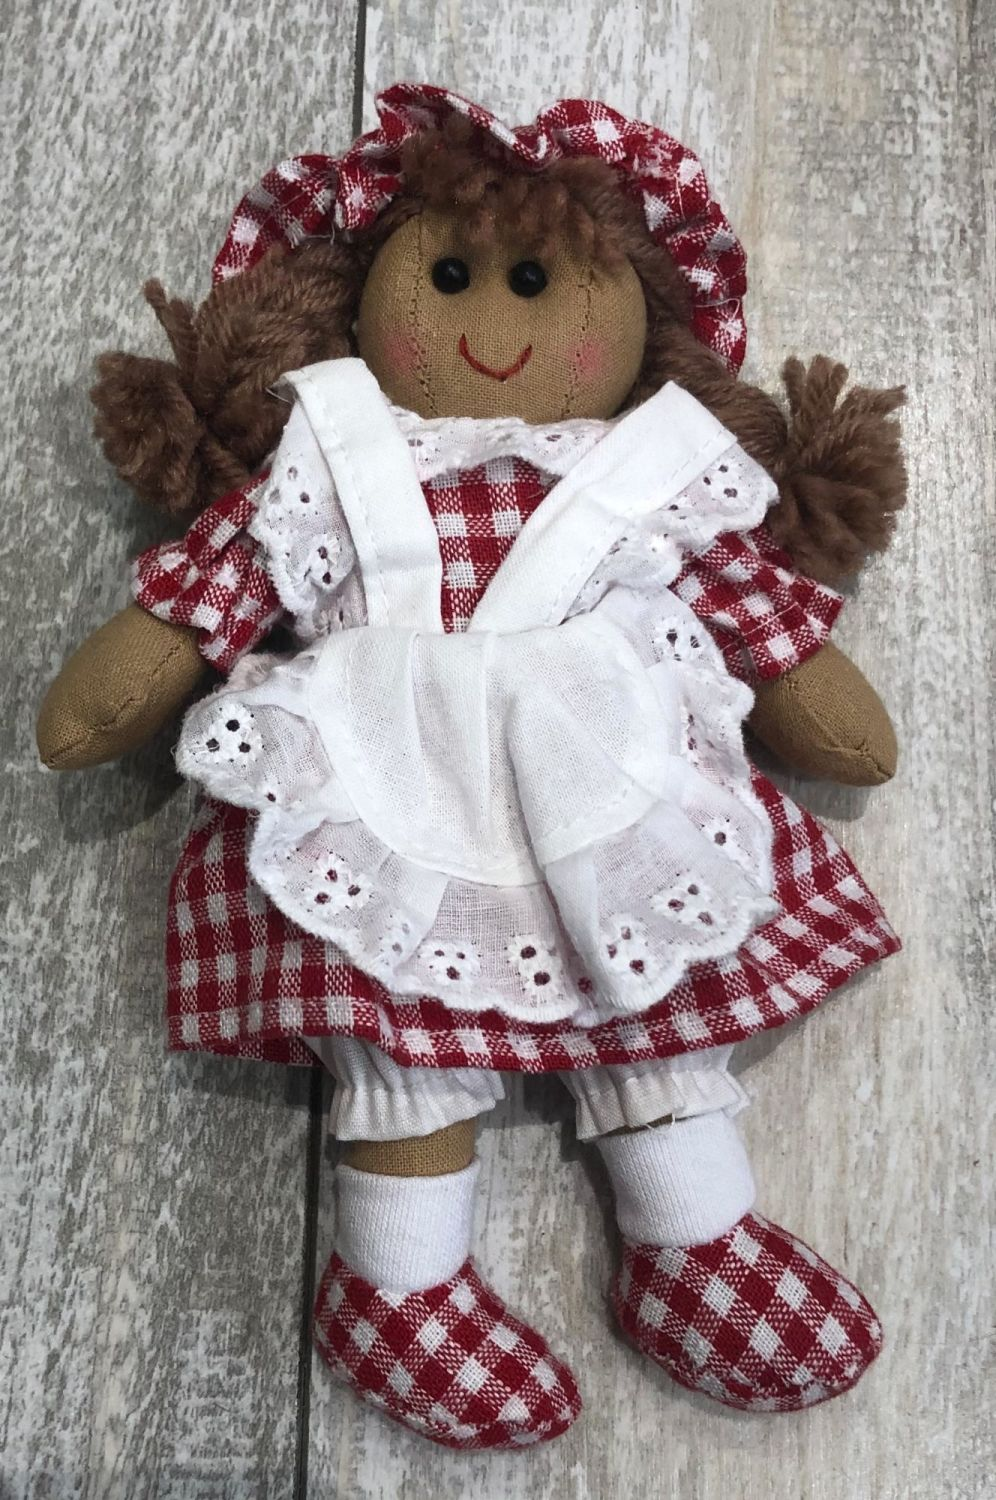 Small Rag Doll Red Check Dress & Mop Cap